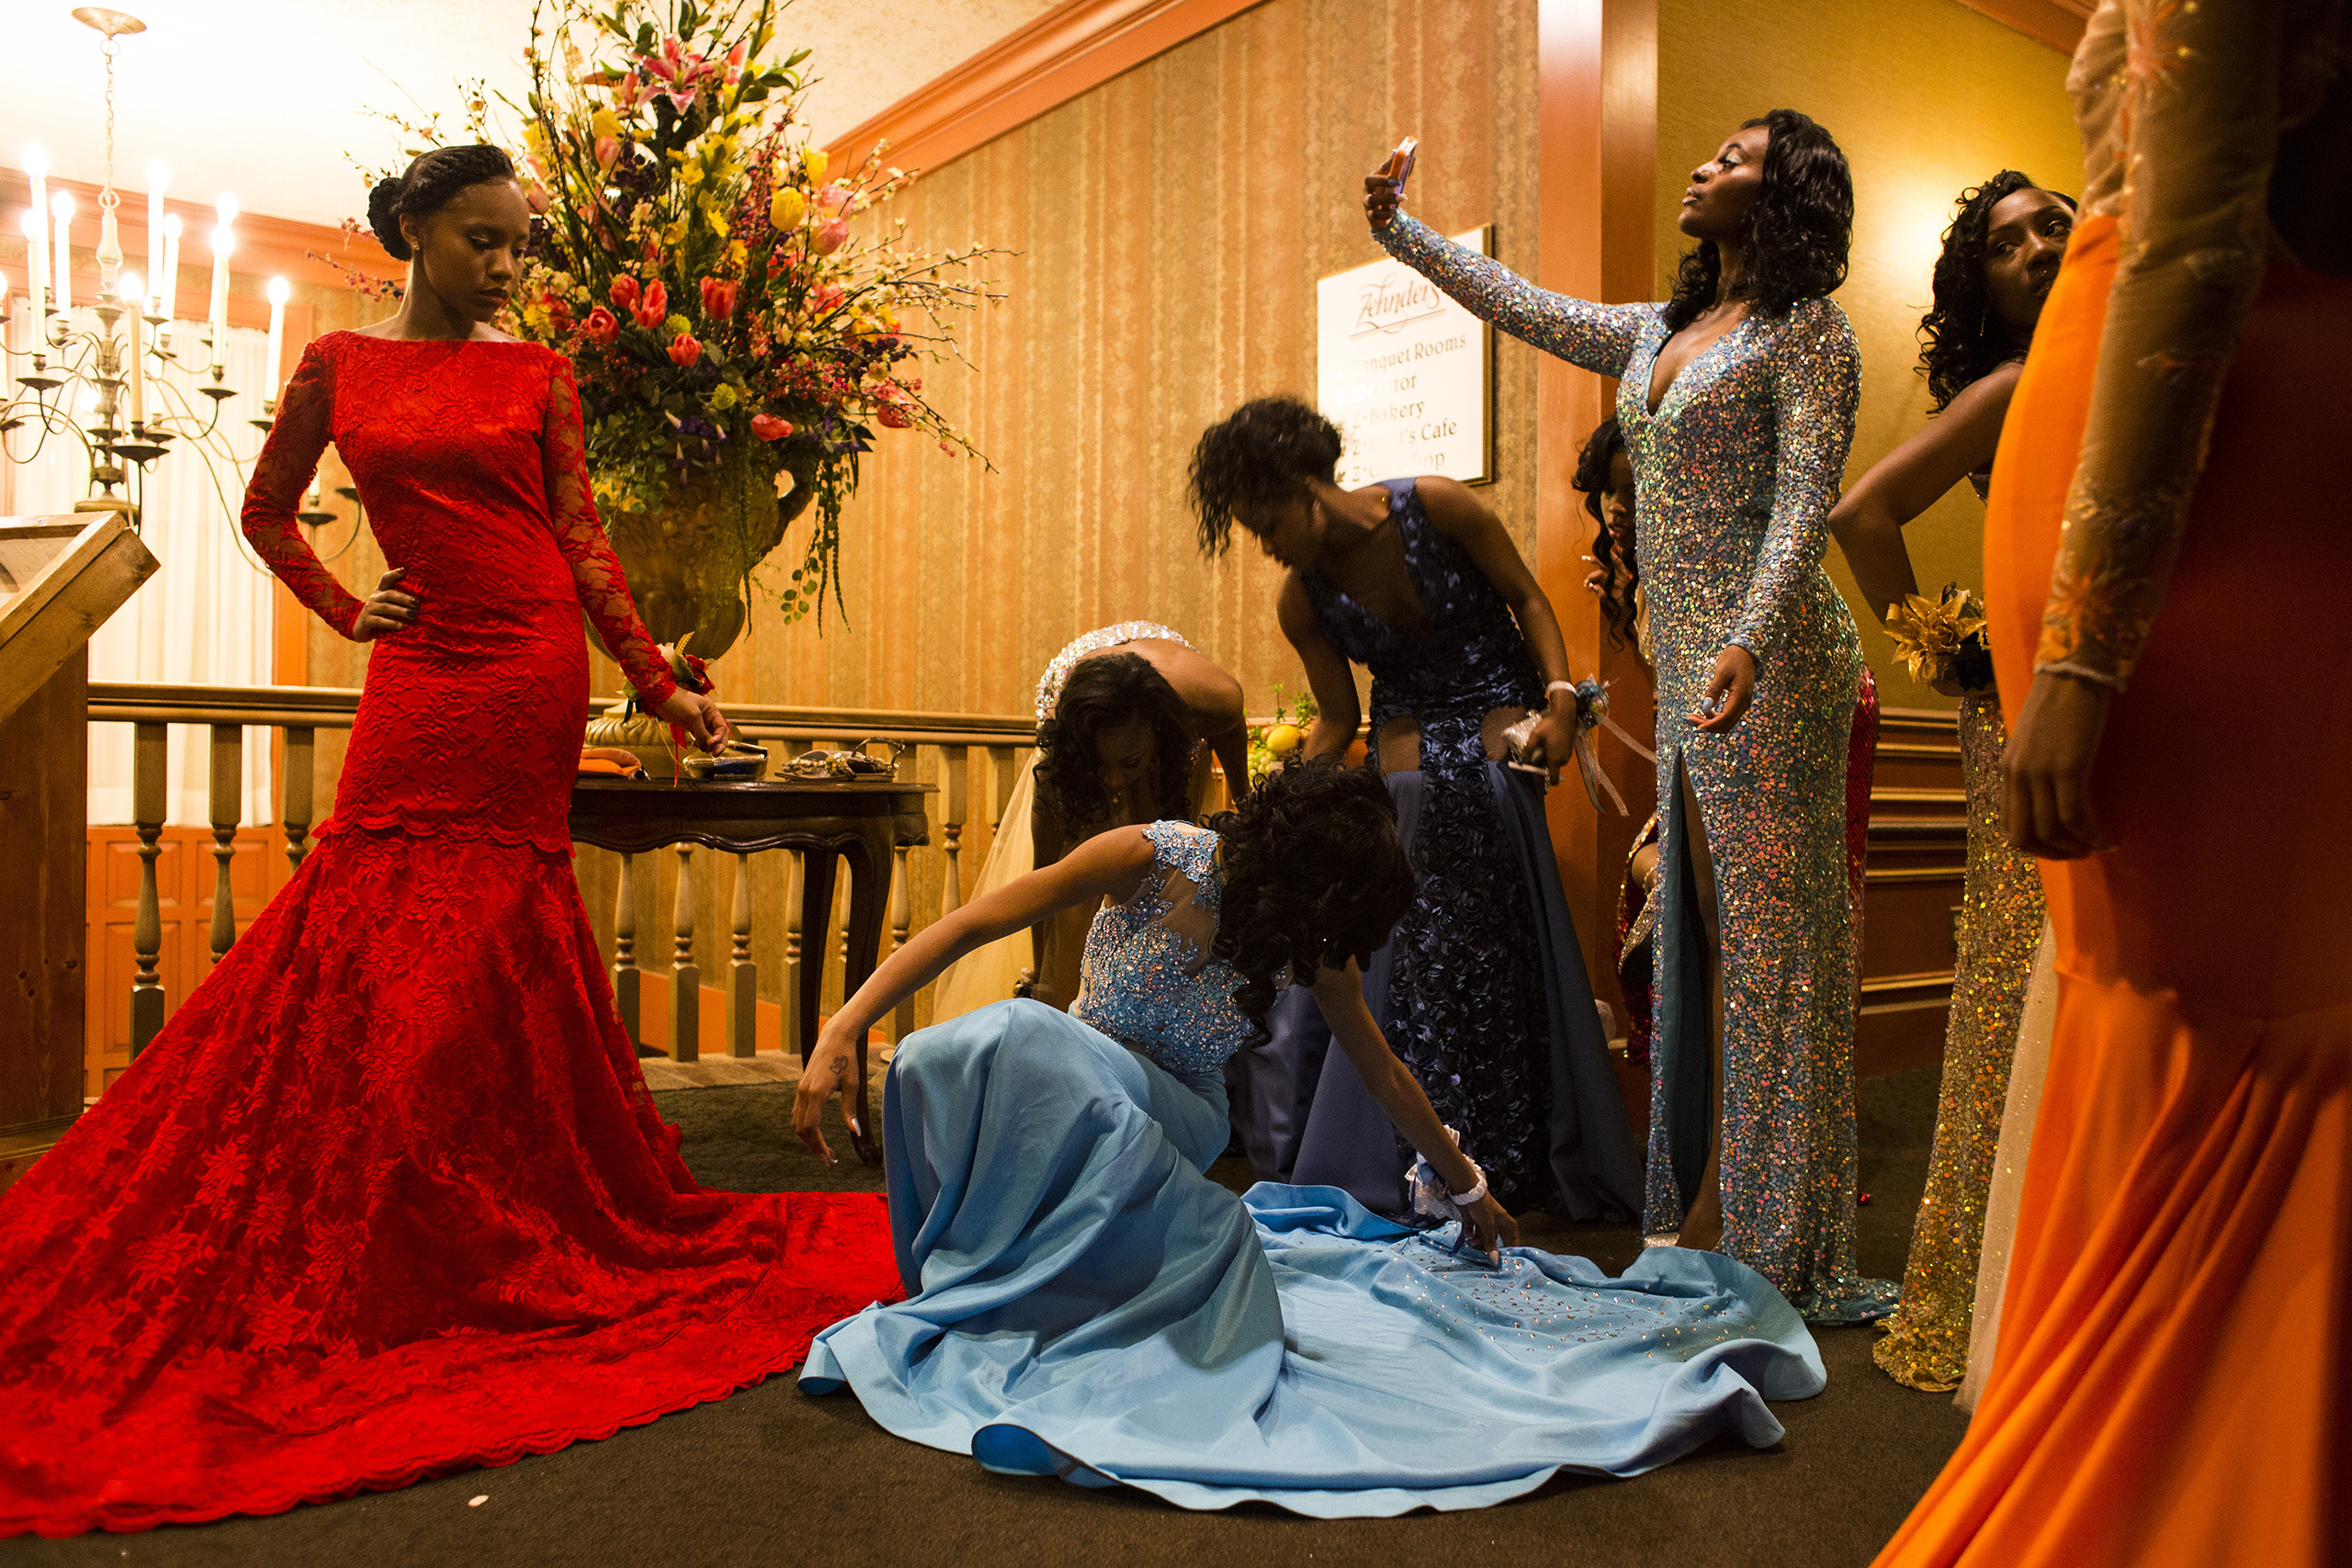 Toward the end of their prom night, girls attending Beecher High School's prom adjust their dresses before talking cell phone photos with friends and faculty, May 2015.